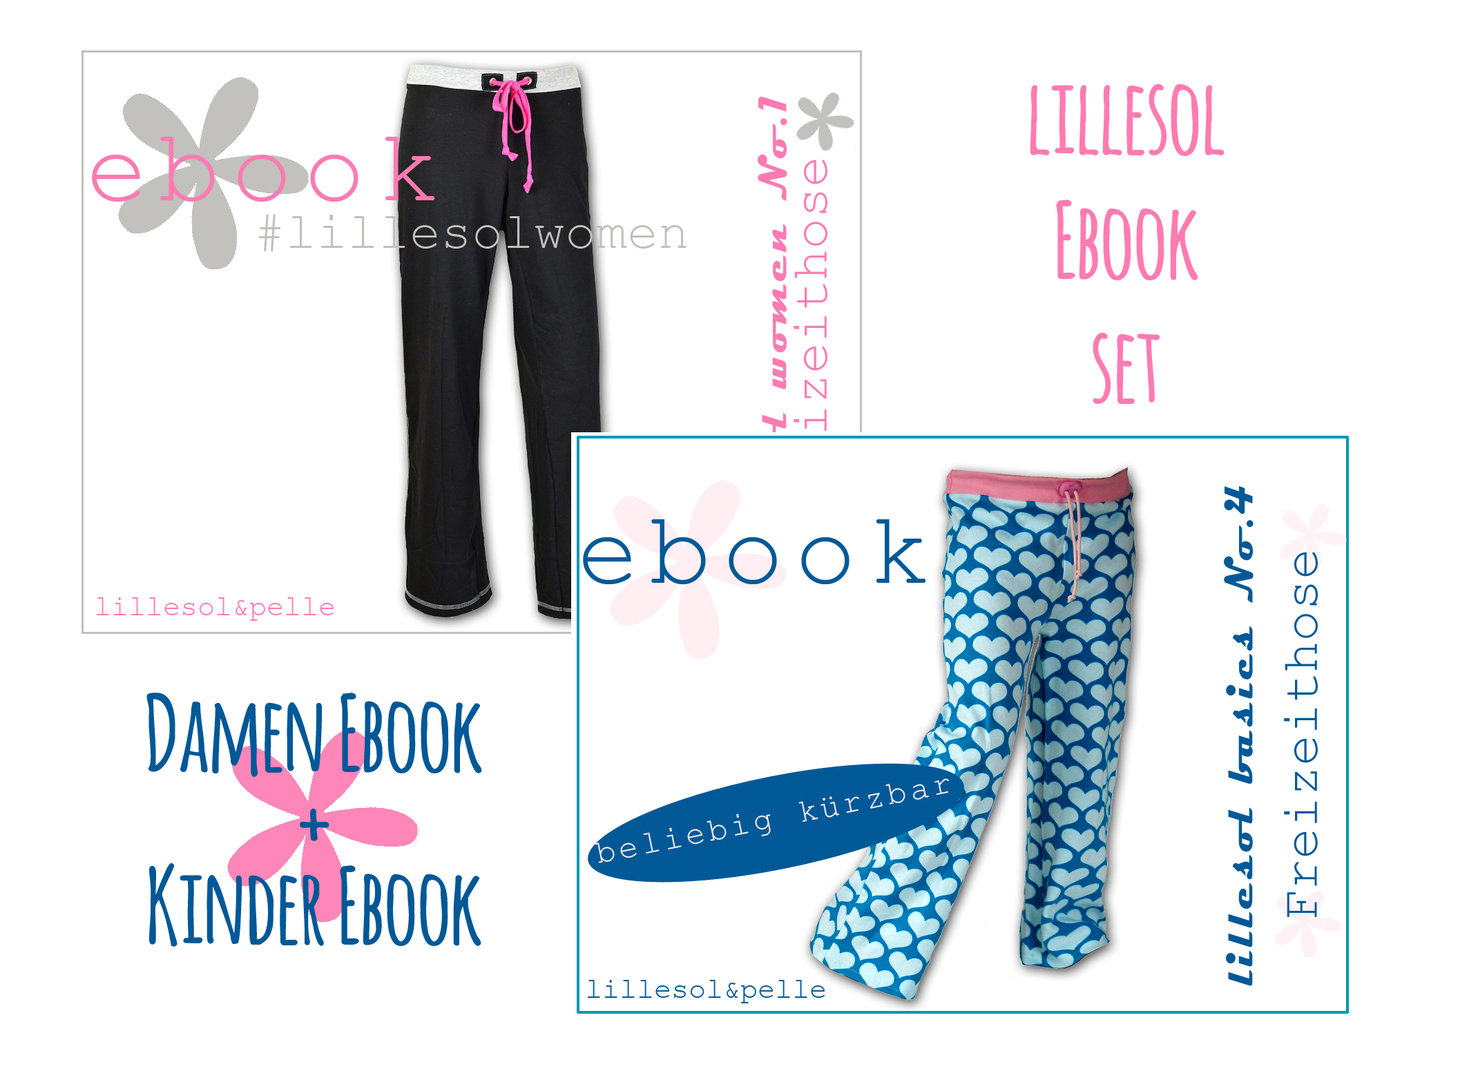 lillesol ebook set basic No.4 und women No.1